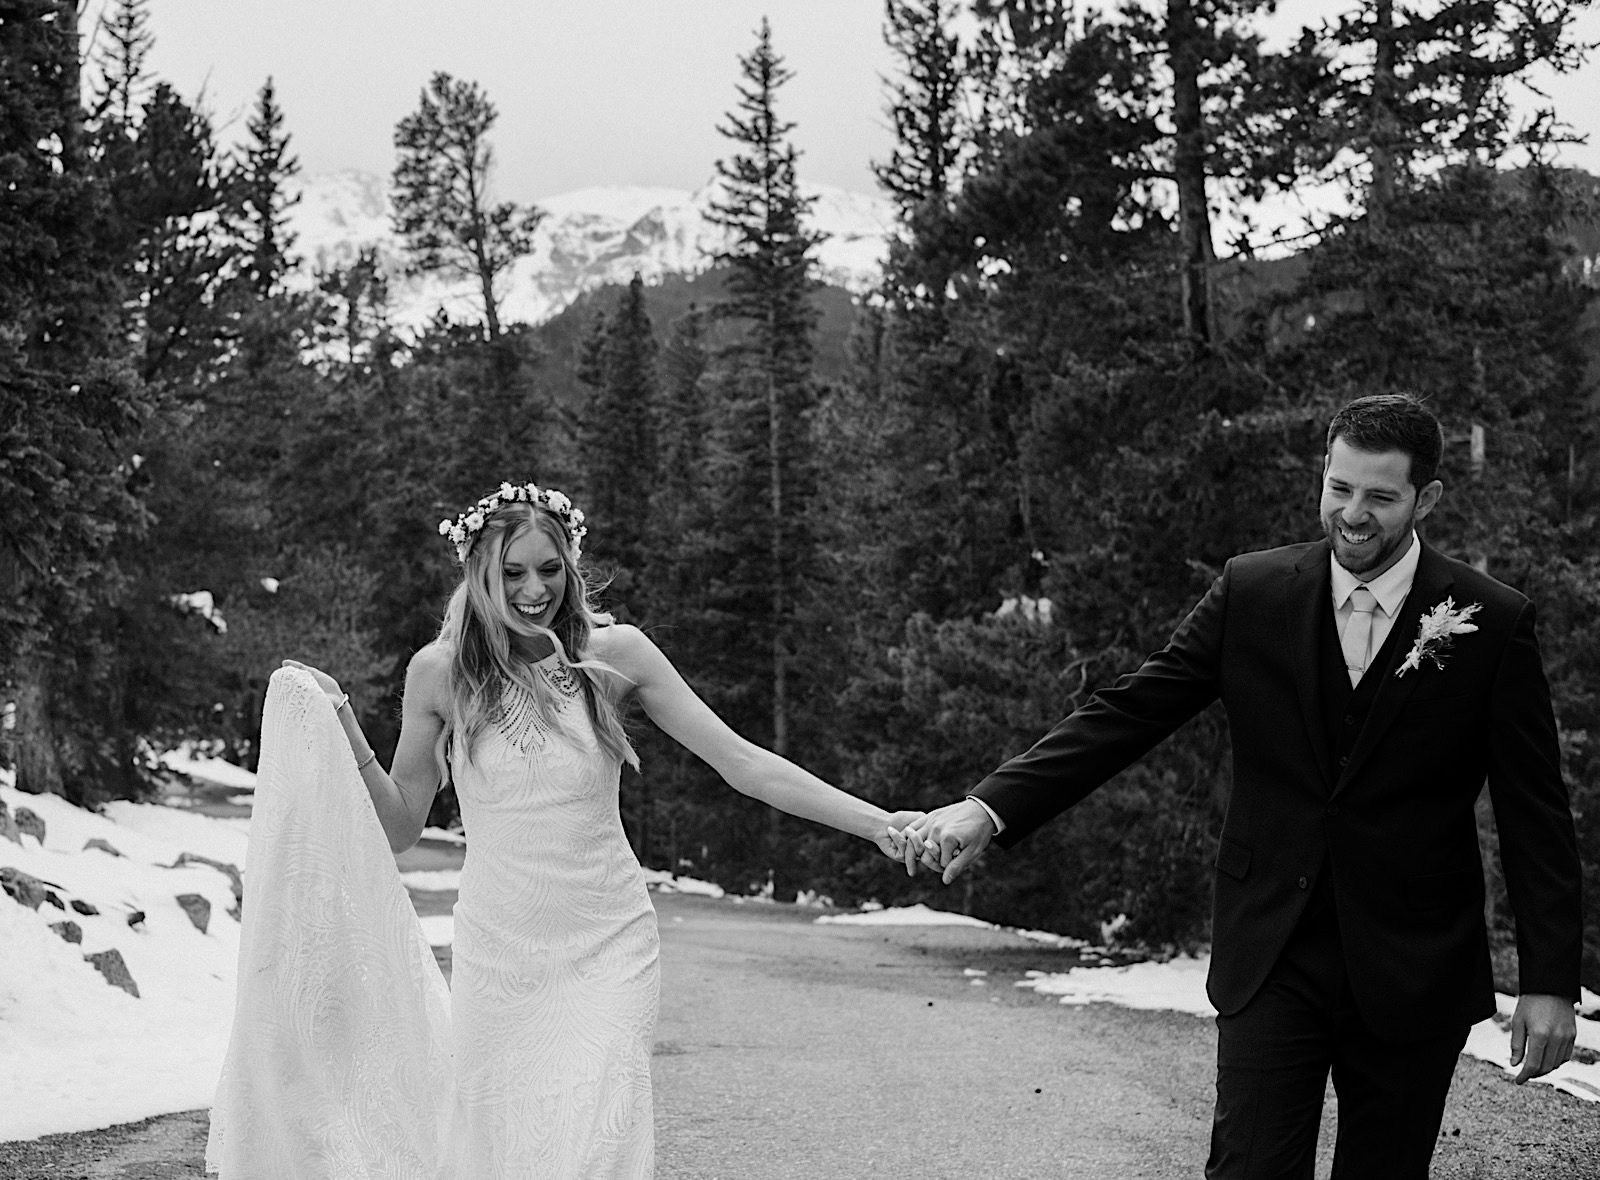 Blackstone Rivers Ranch Wedding, Colorado Wedding Photographer, Colorado Elopement Photographer, Colorado Mountain Wedding, Colorado Wedding Ideas, Colorado Wedding Inspiration, Destination Wedding in Colorado, Places to Elope in Colorado, Places to get married in Colorado, Boho Wedding Inspiration, Wedding Photography, Wedding ideas, Wedding Inspiration, First Look, Bride and Groom, Bride and Groom Posing, Wedding posing